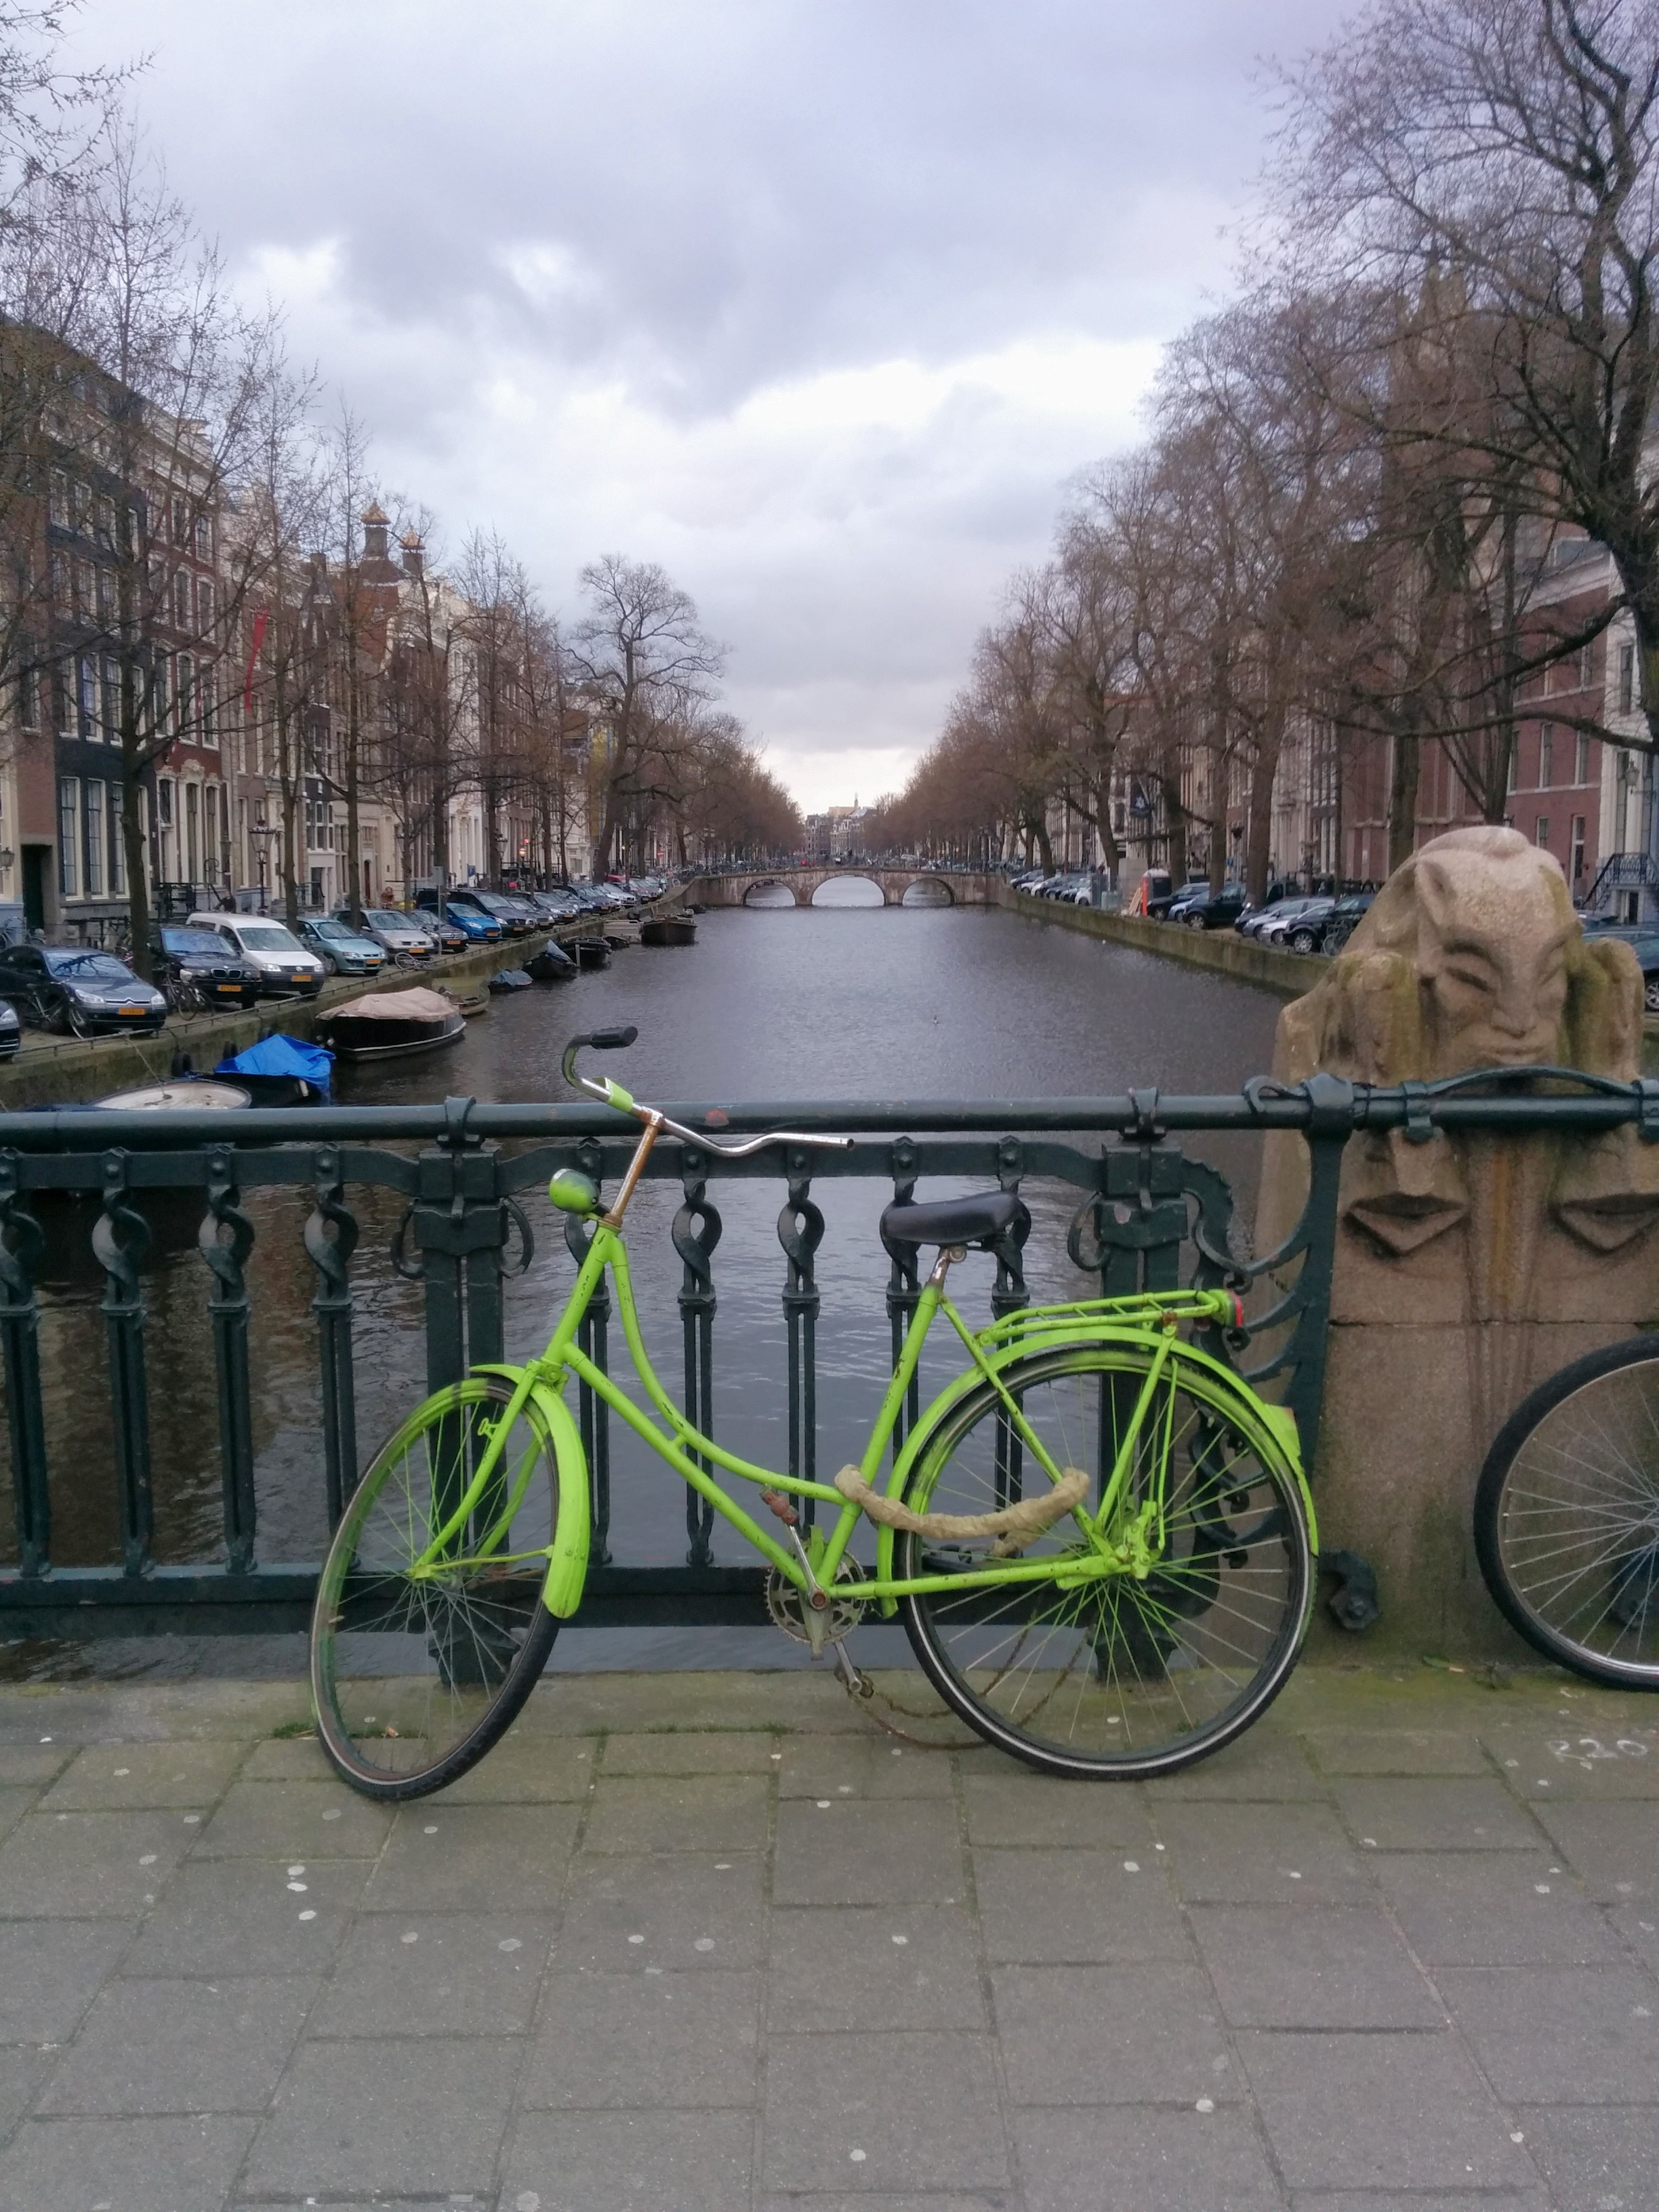 Amsterdam and Keukenhof- Our road trip from Zurich to Amsterdam